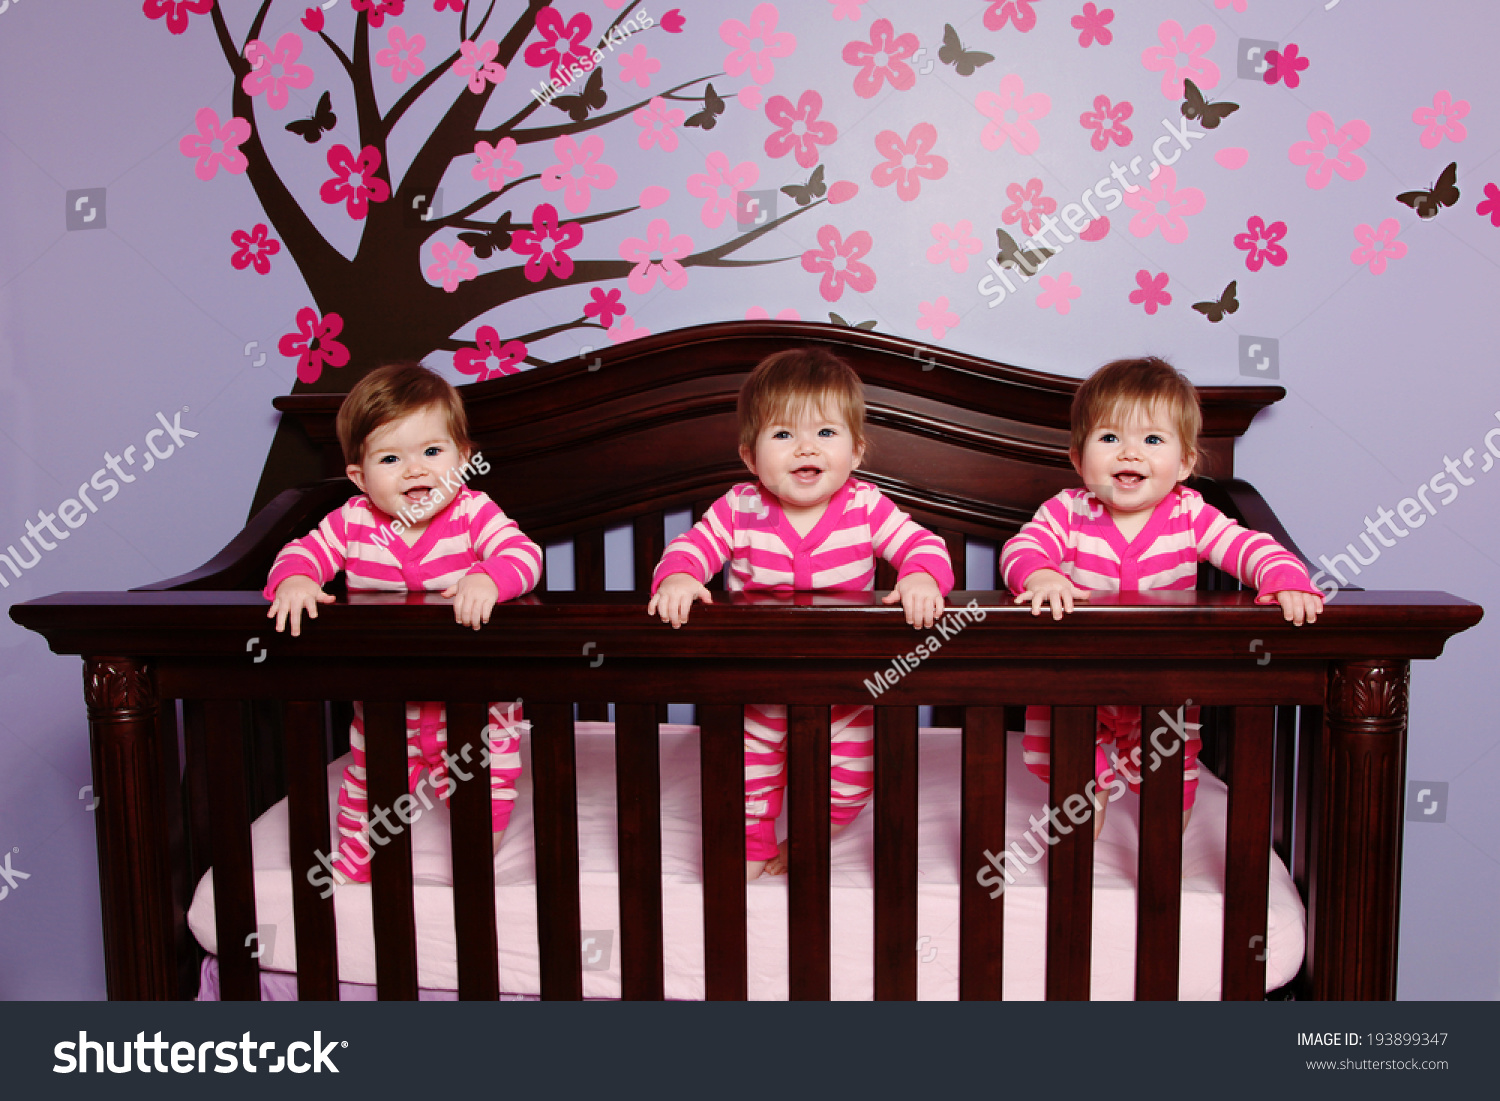 Crib for triplet babies - Sweet Baby Triplets In Crib